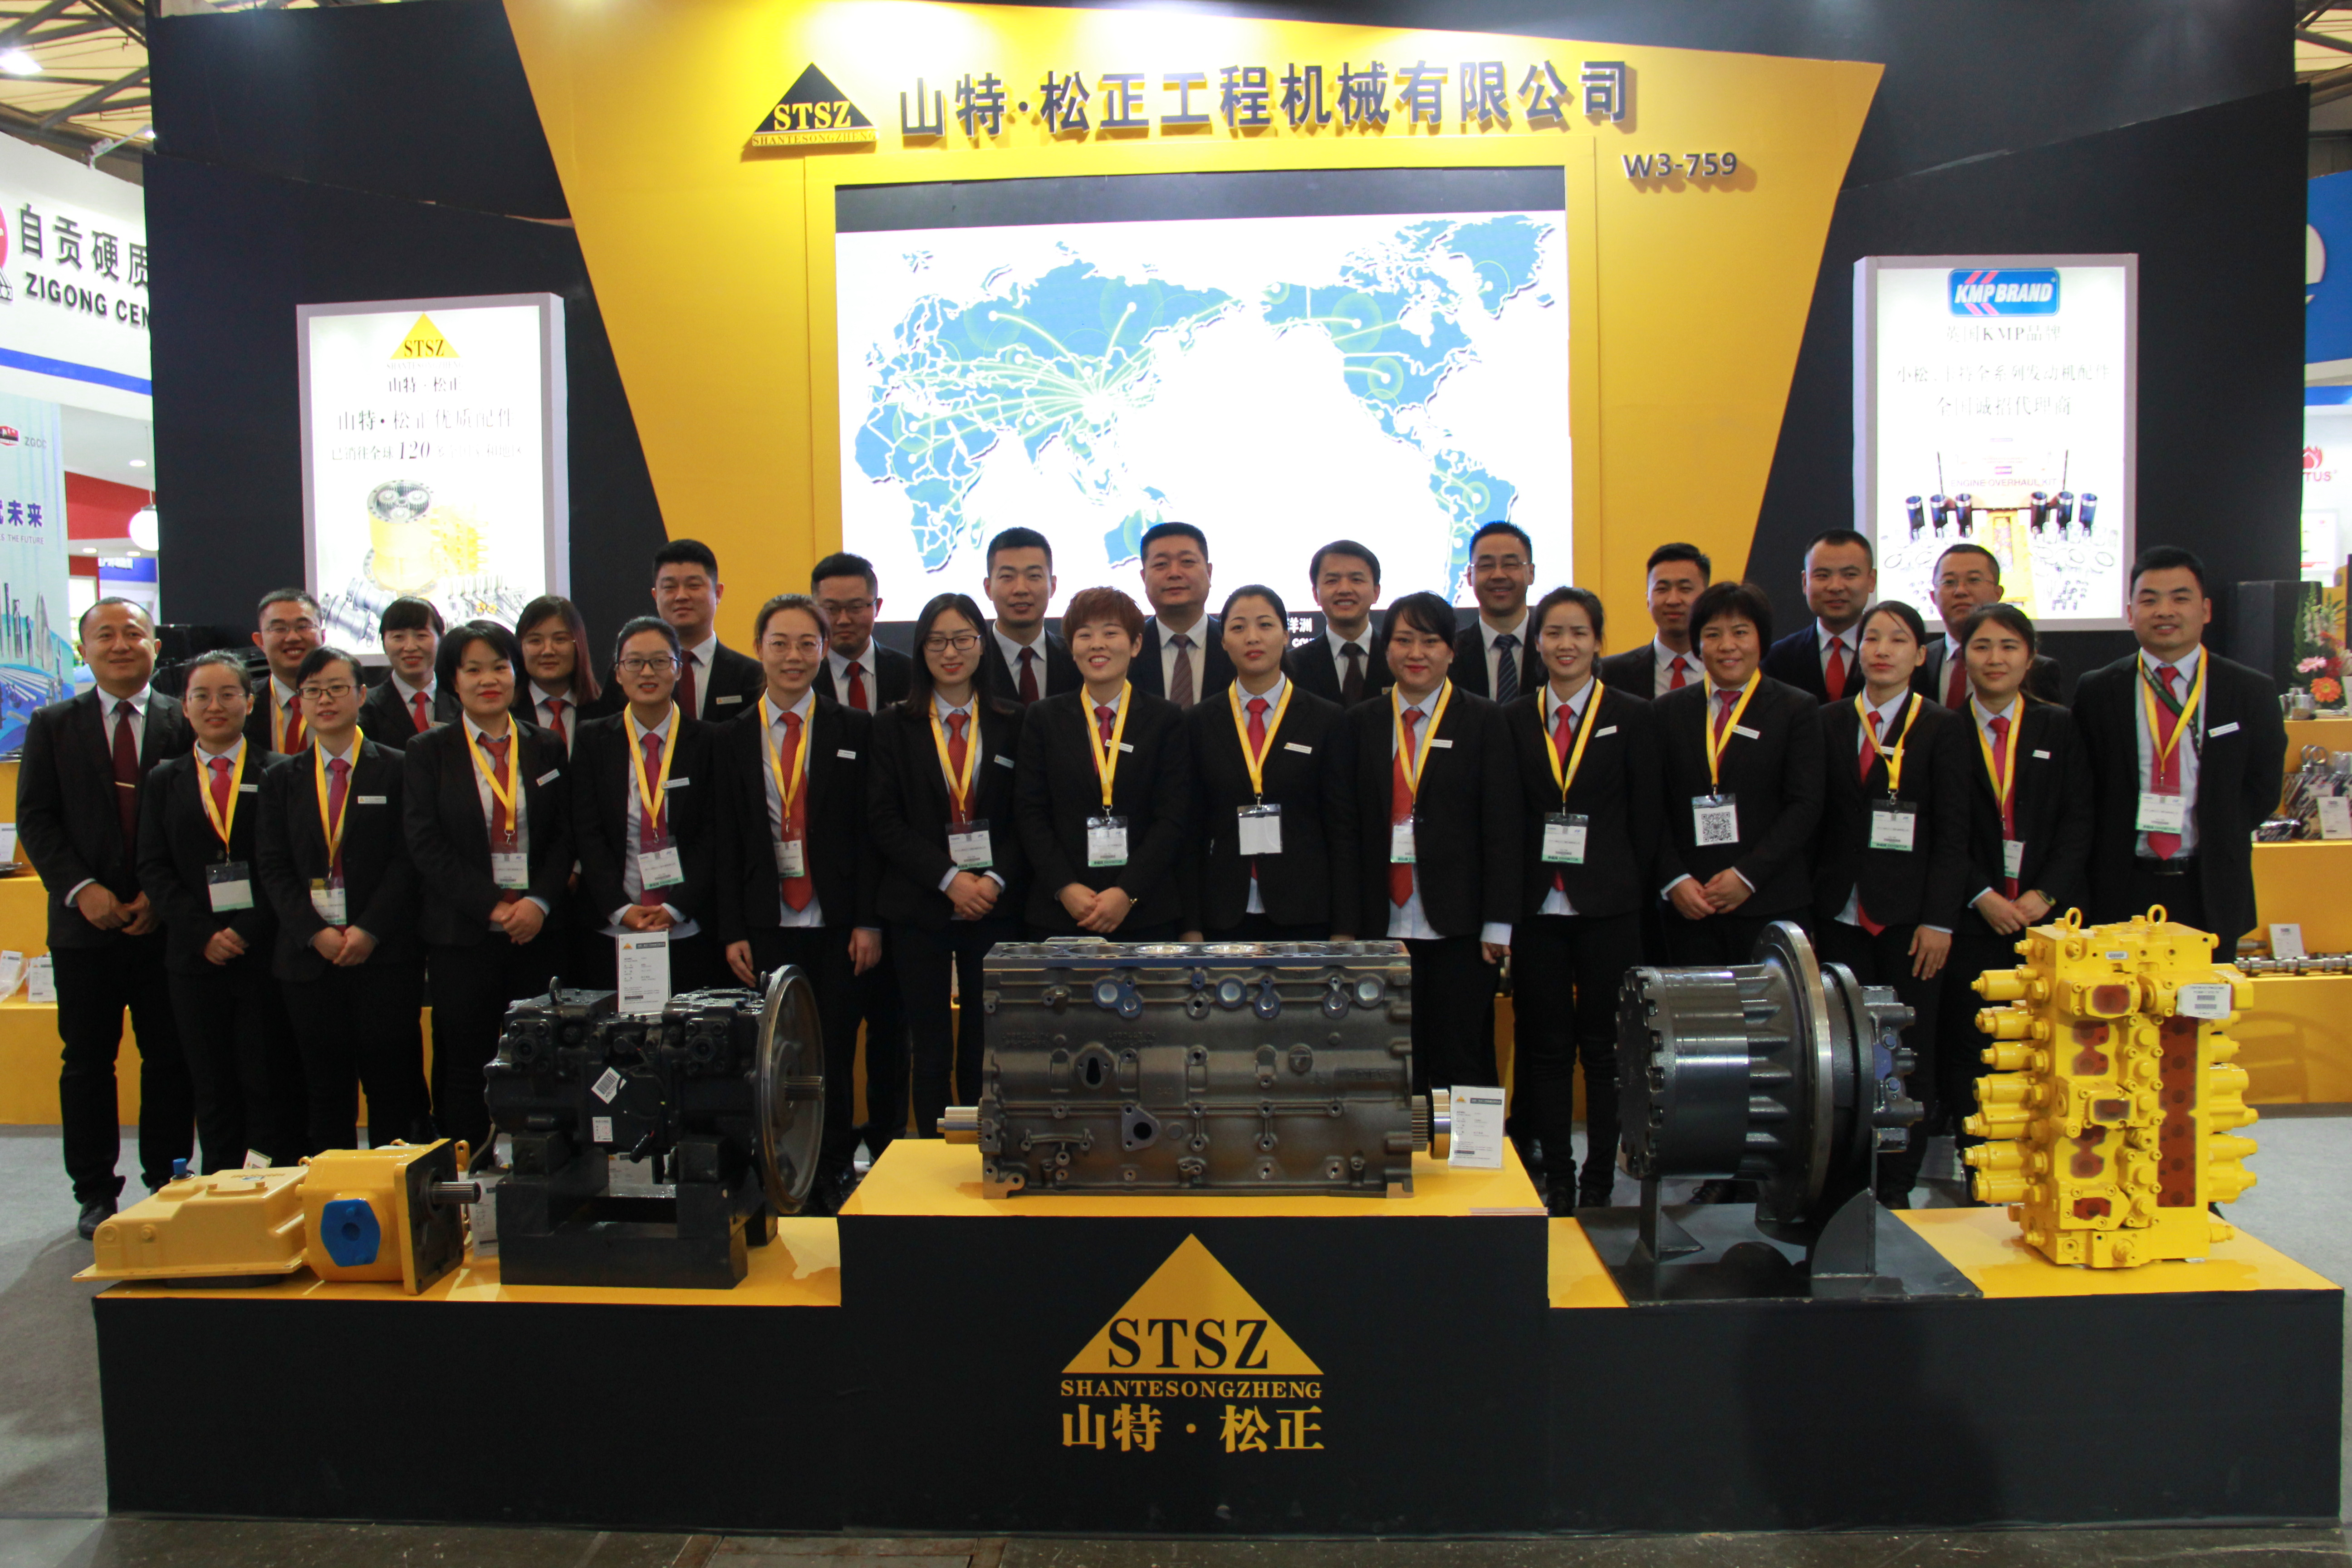 2018 BAUMA FAIR IN SHANGHAI